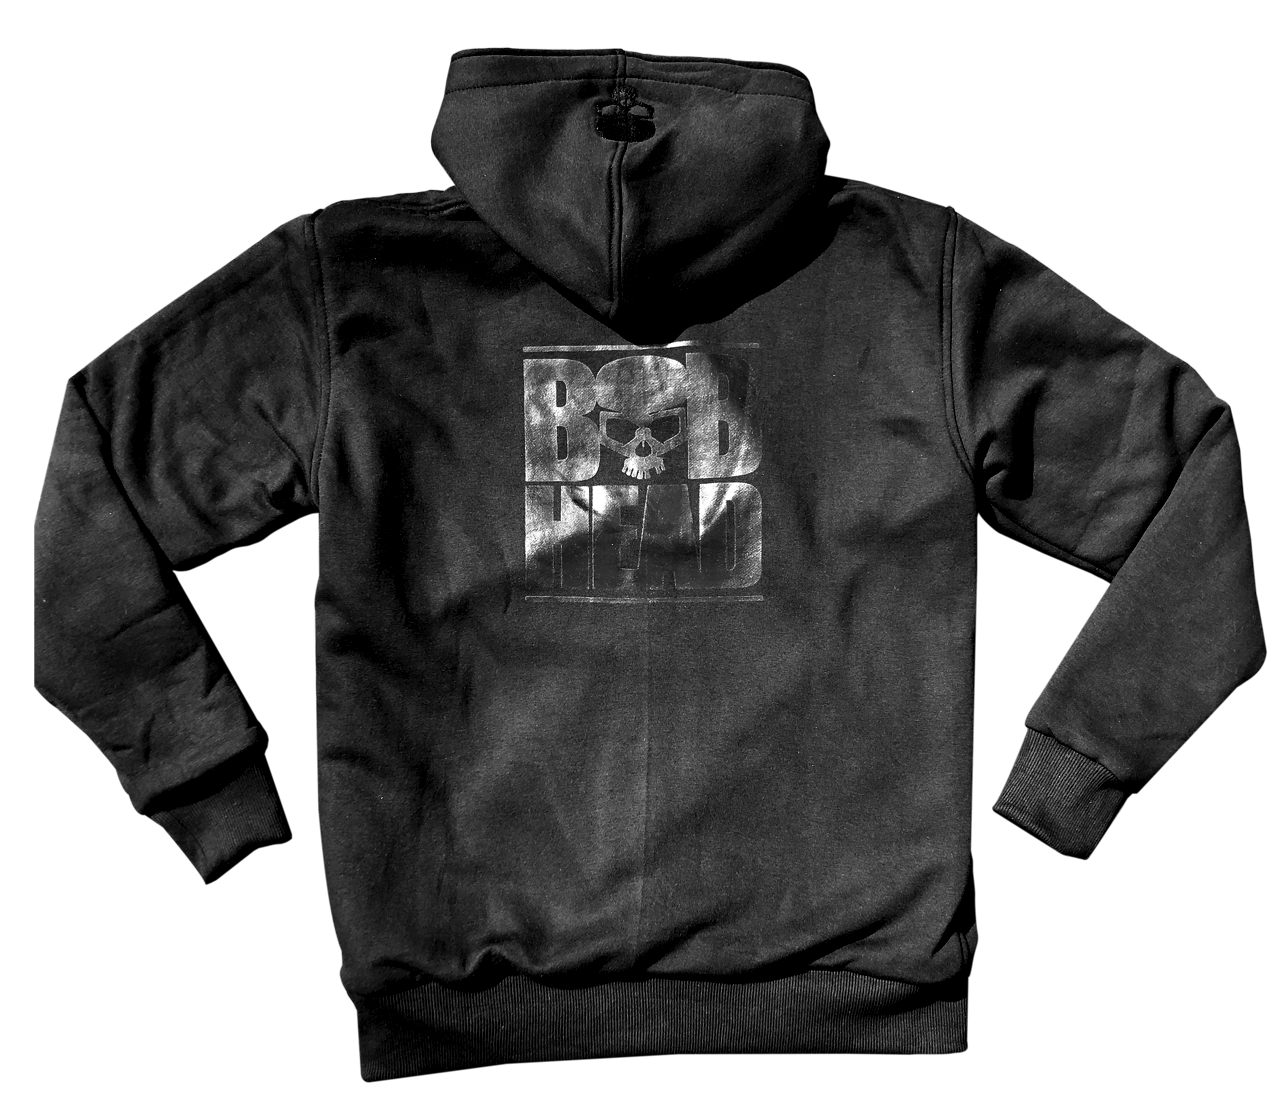 bobhead-All-Black-Hoody-Rear